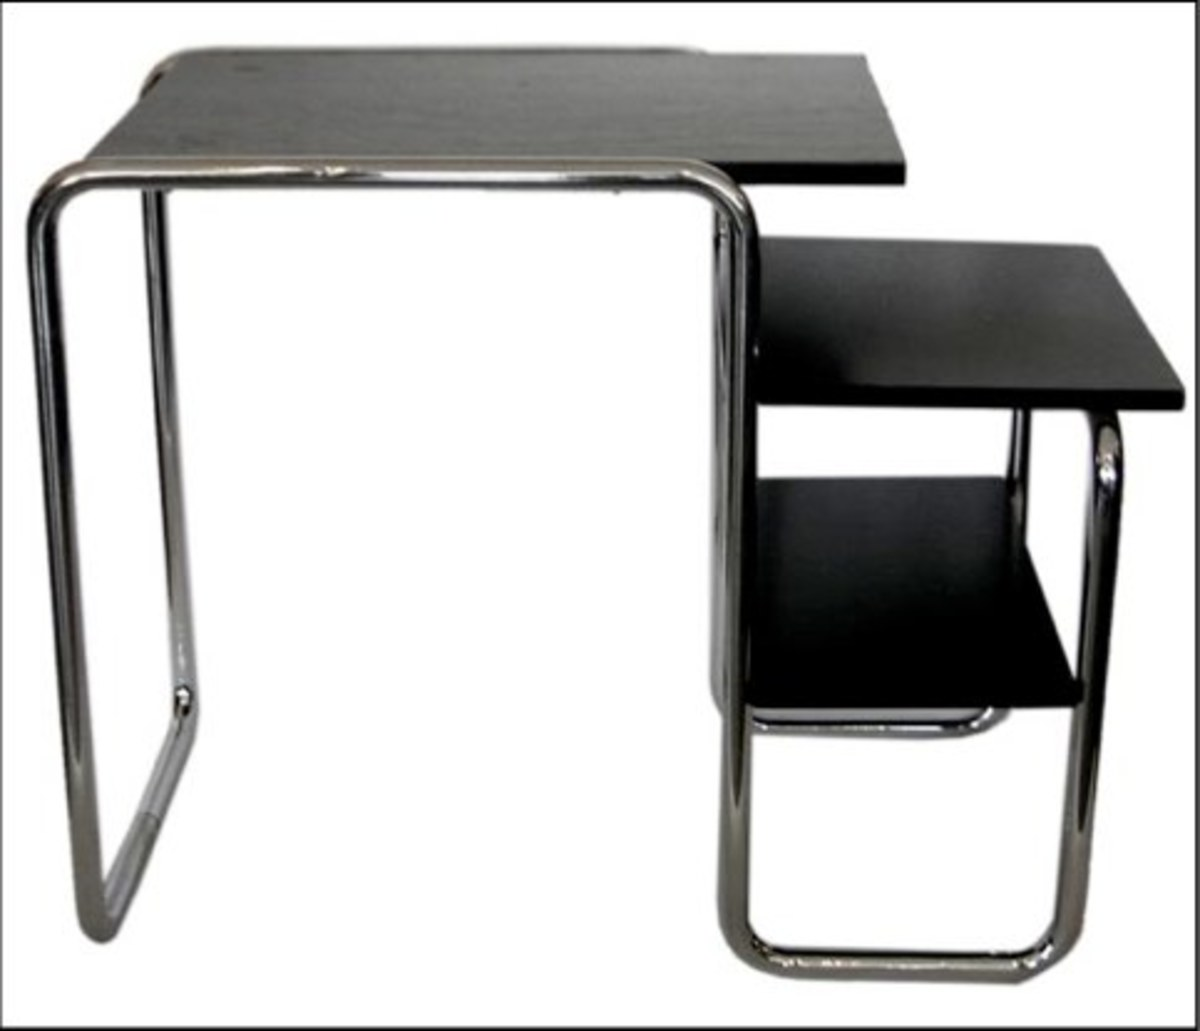 One of the pieces of furniture that Marianne designed while working for Walter Gropius.